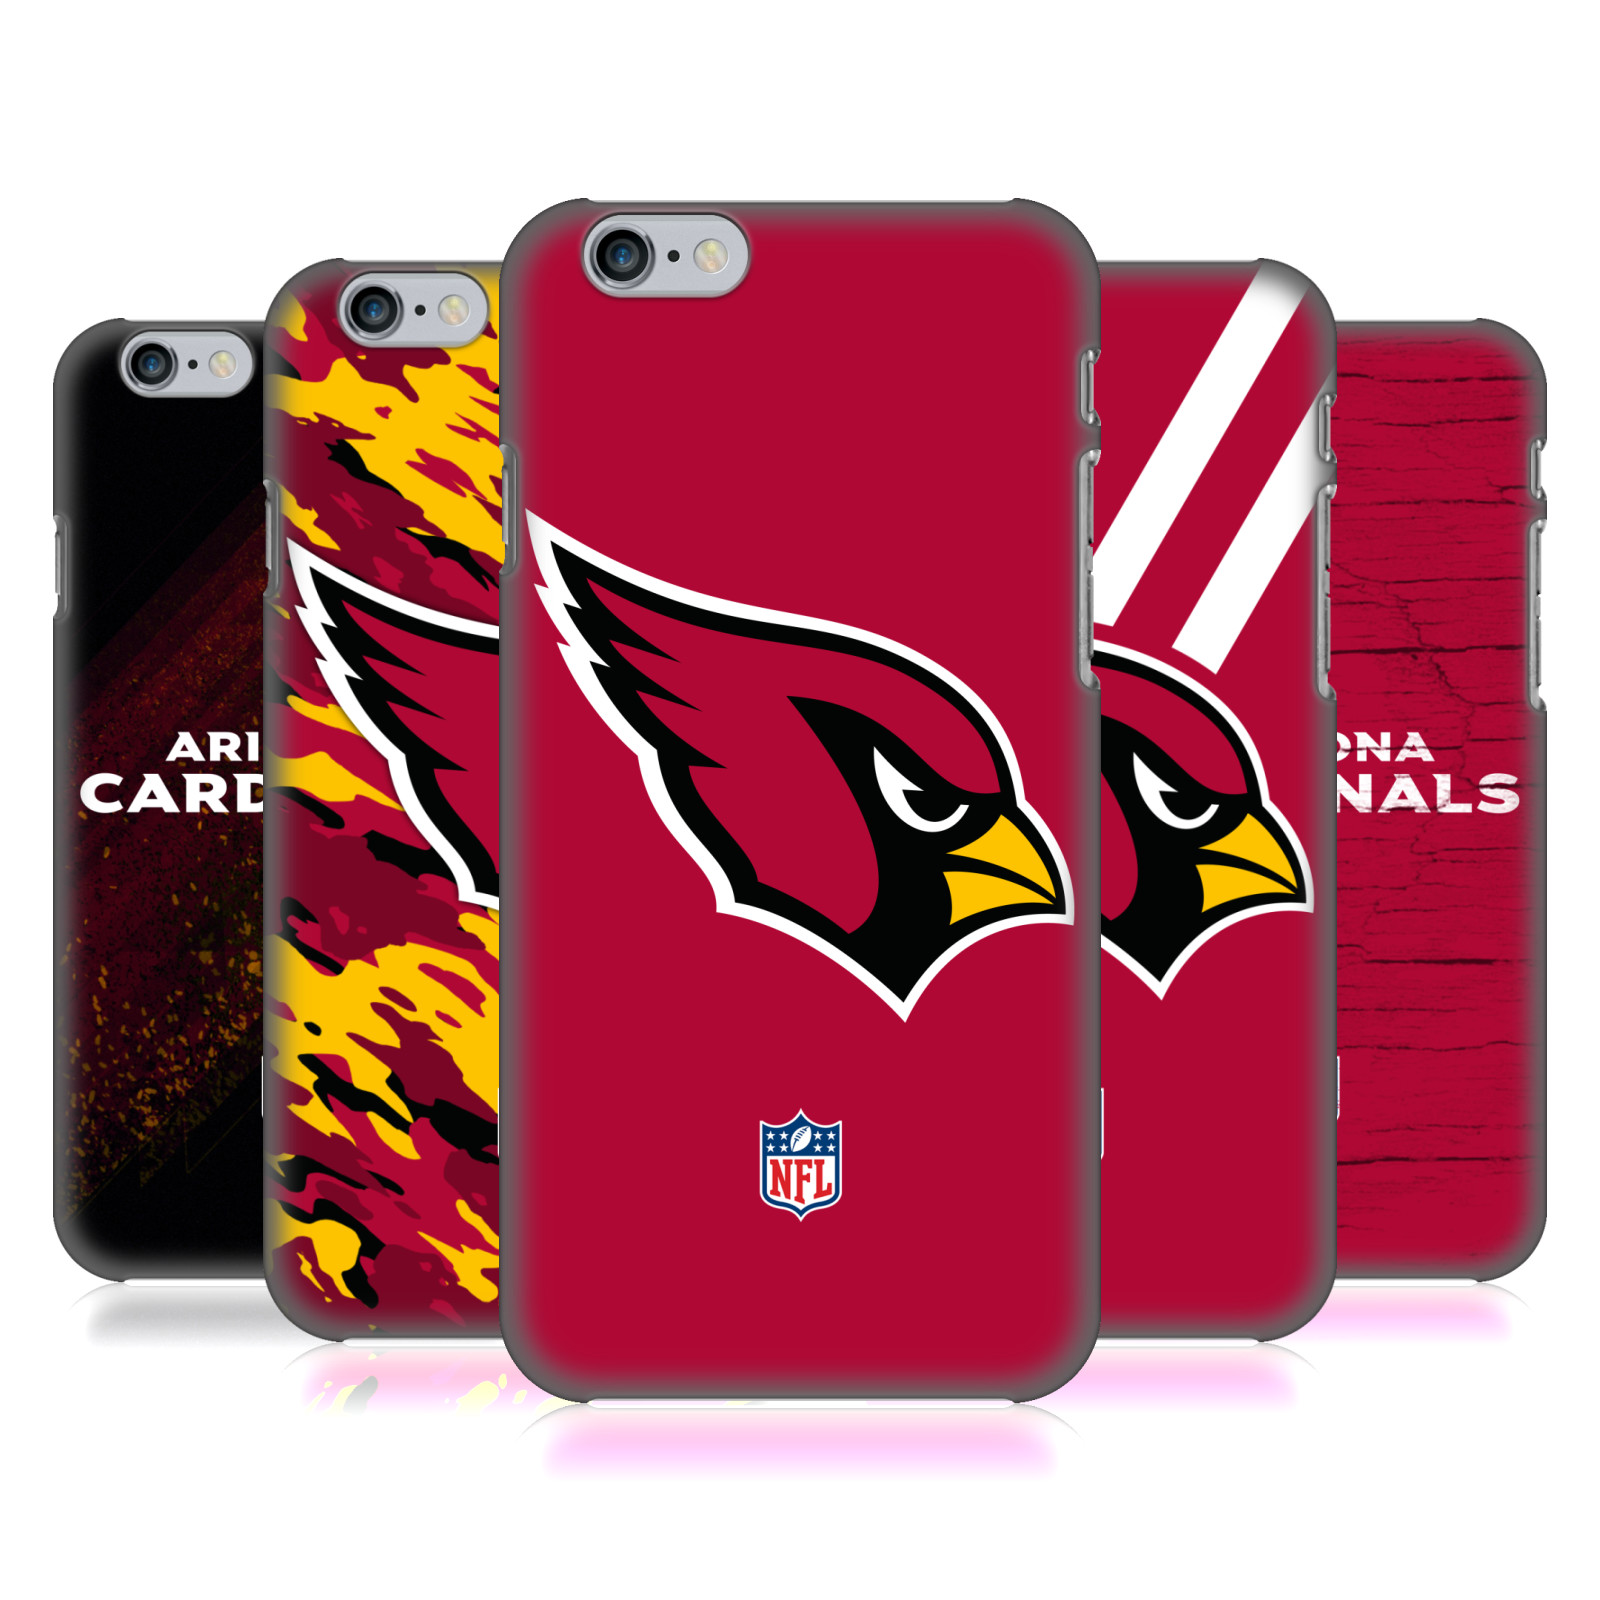 National Football League NFL Phone and Tablet cases